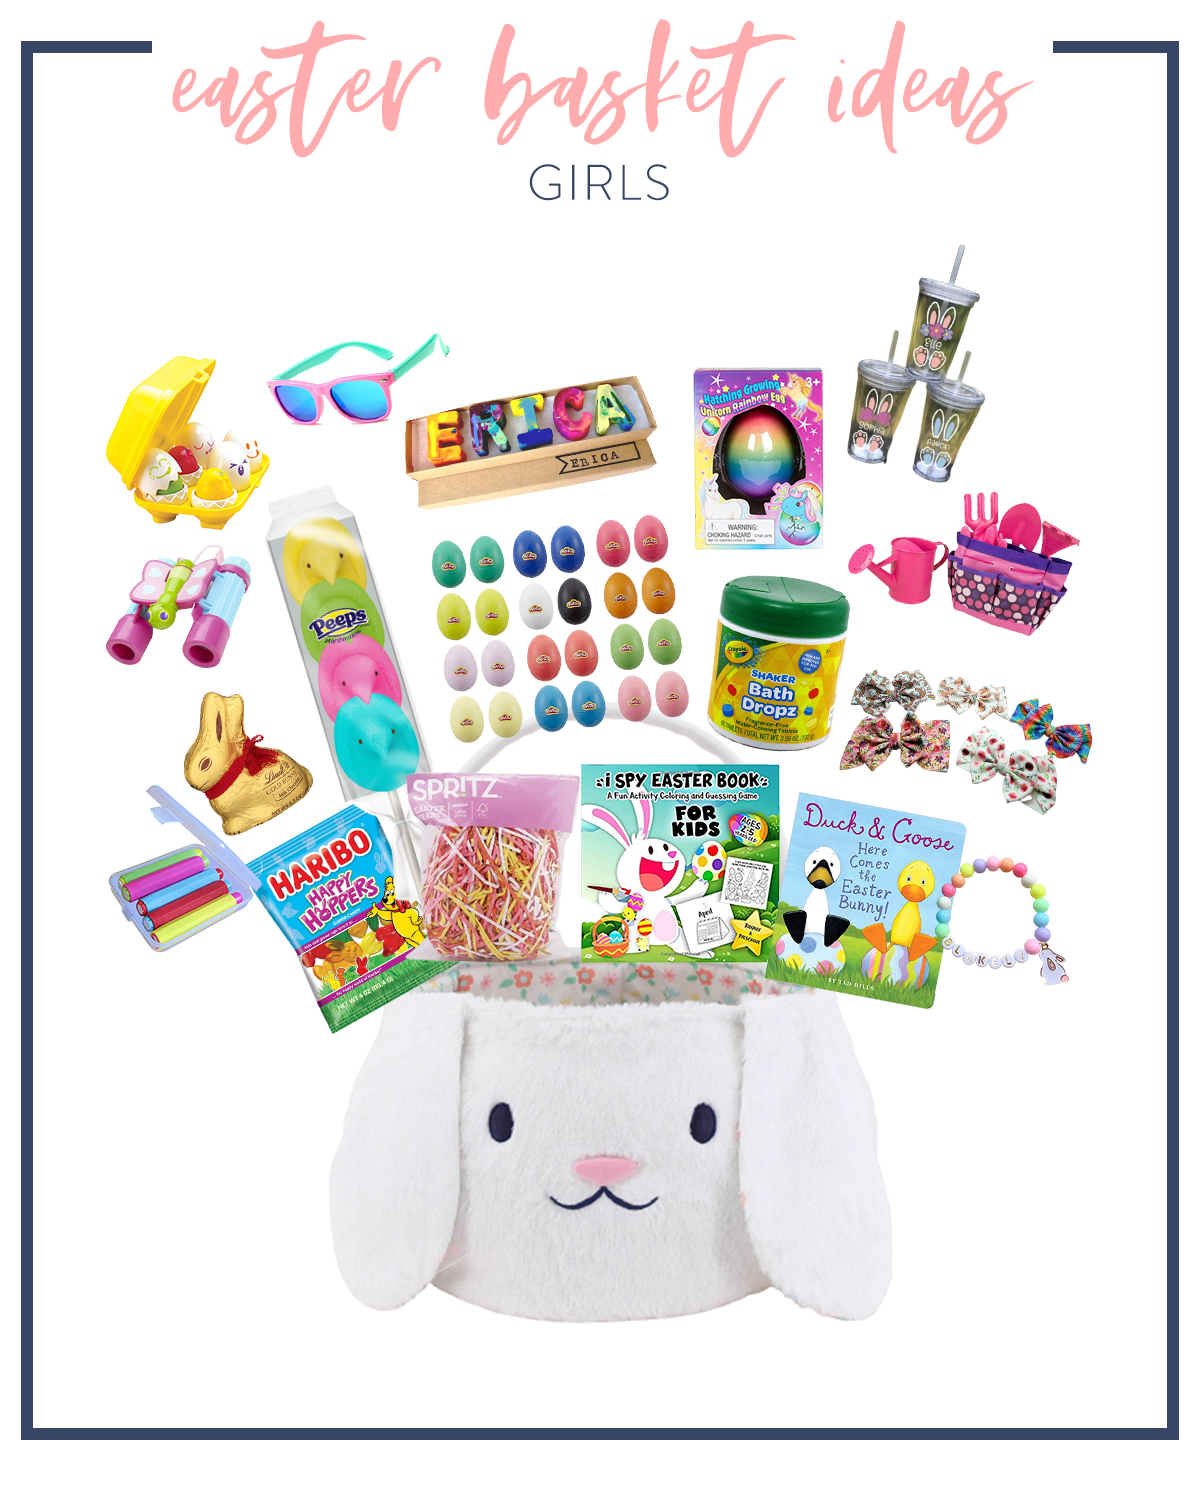 Kids Easter Basket Ideas by popular Houston lifestyle blog, Fancy Ashley: collage image of a white bunny basket, pink frame sunglasses, name crayons, gardening tools, Melissa and Doug binoculars, chocolate bunny, Haribo gummy bears, pink basket grass, Duck and Goose book, rainbow bead bracelets, Crayola bath drops, hair bows, and chalk.